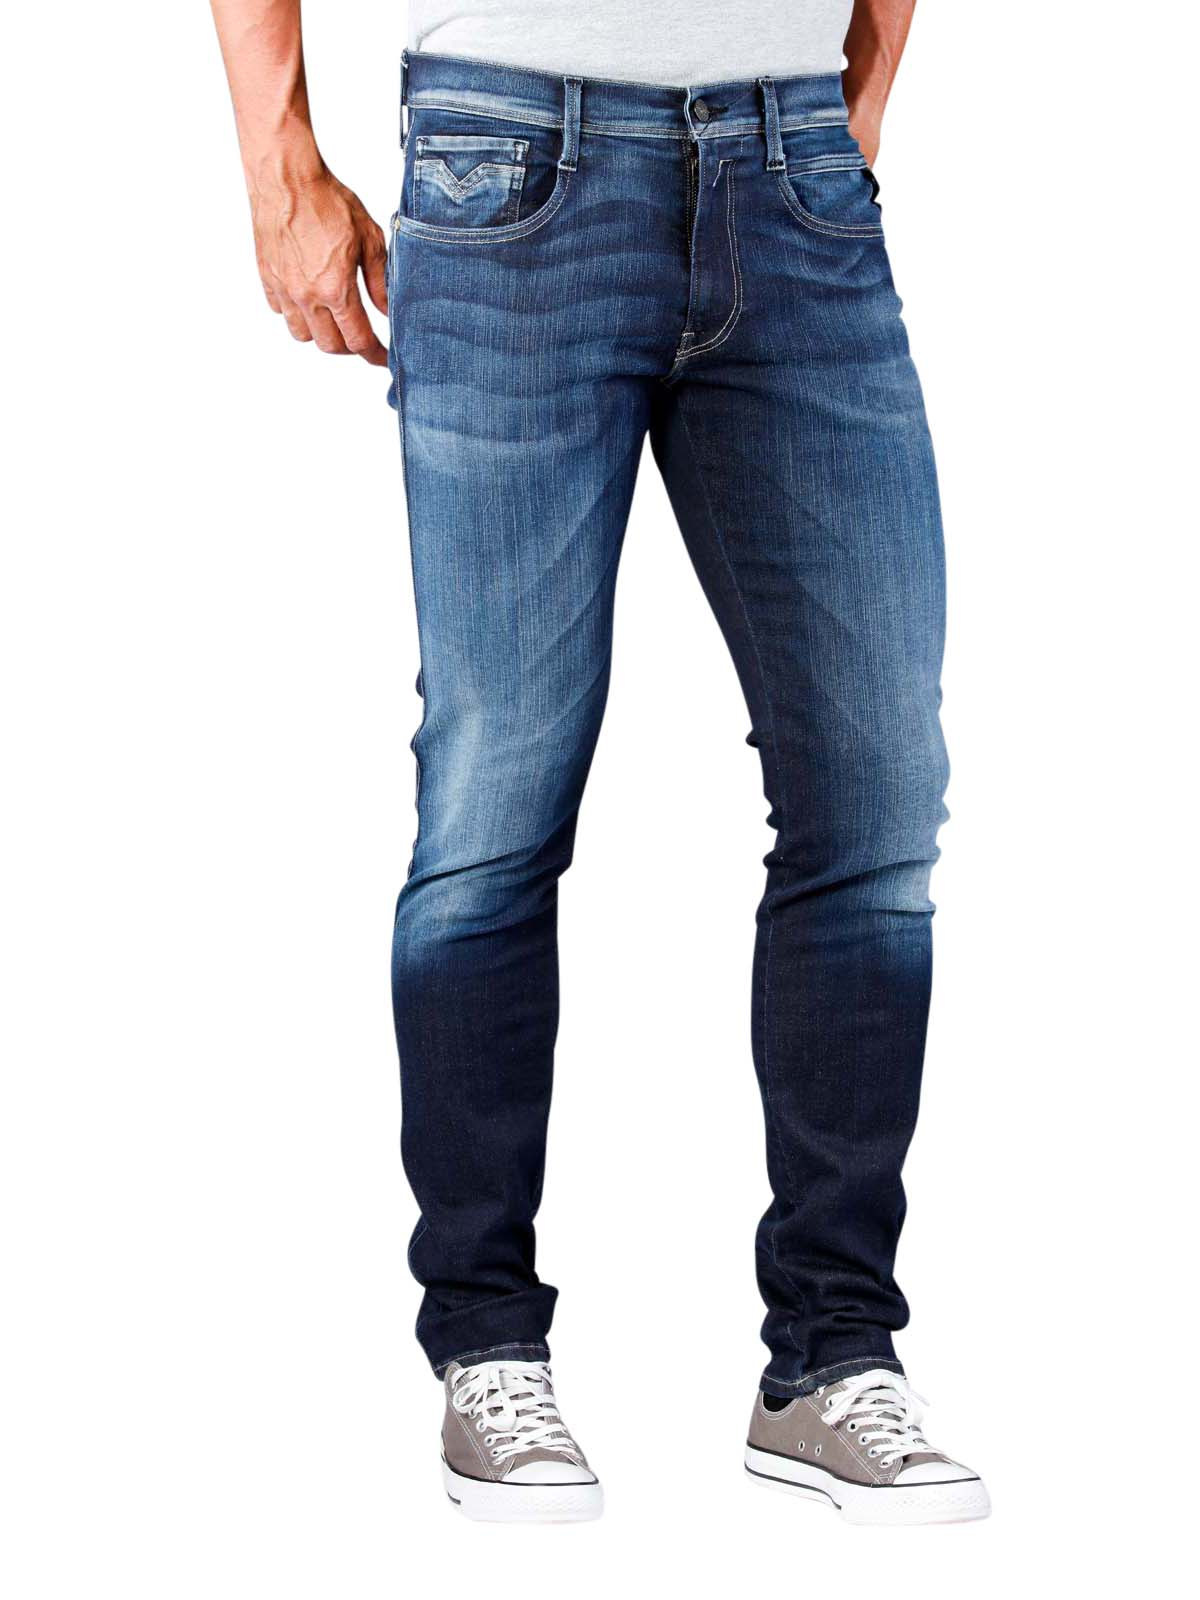 24bbb434c852ed McJeans.ch - Fast Delivery | Replay Anbass Jeans Slim Hyperflex dark washed  | Free Shipping - Free Returns